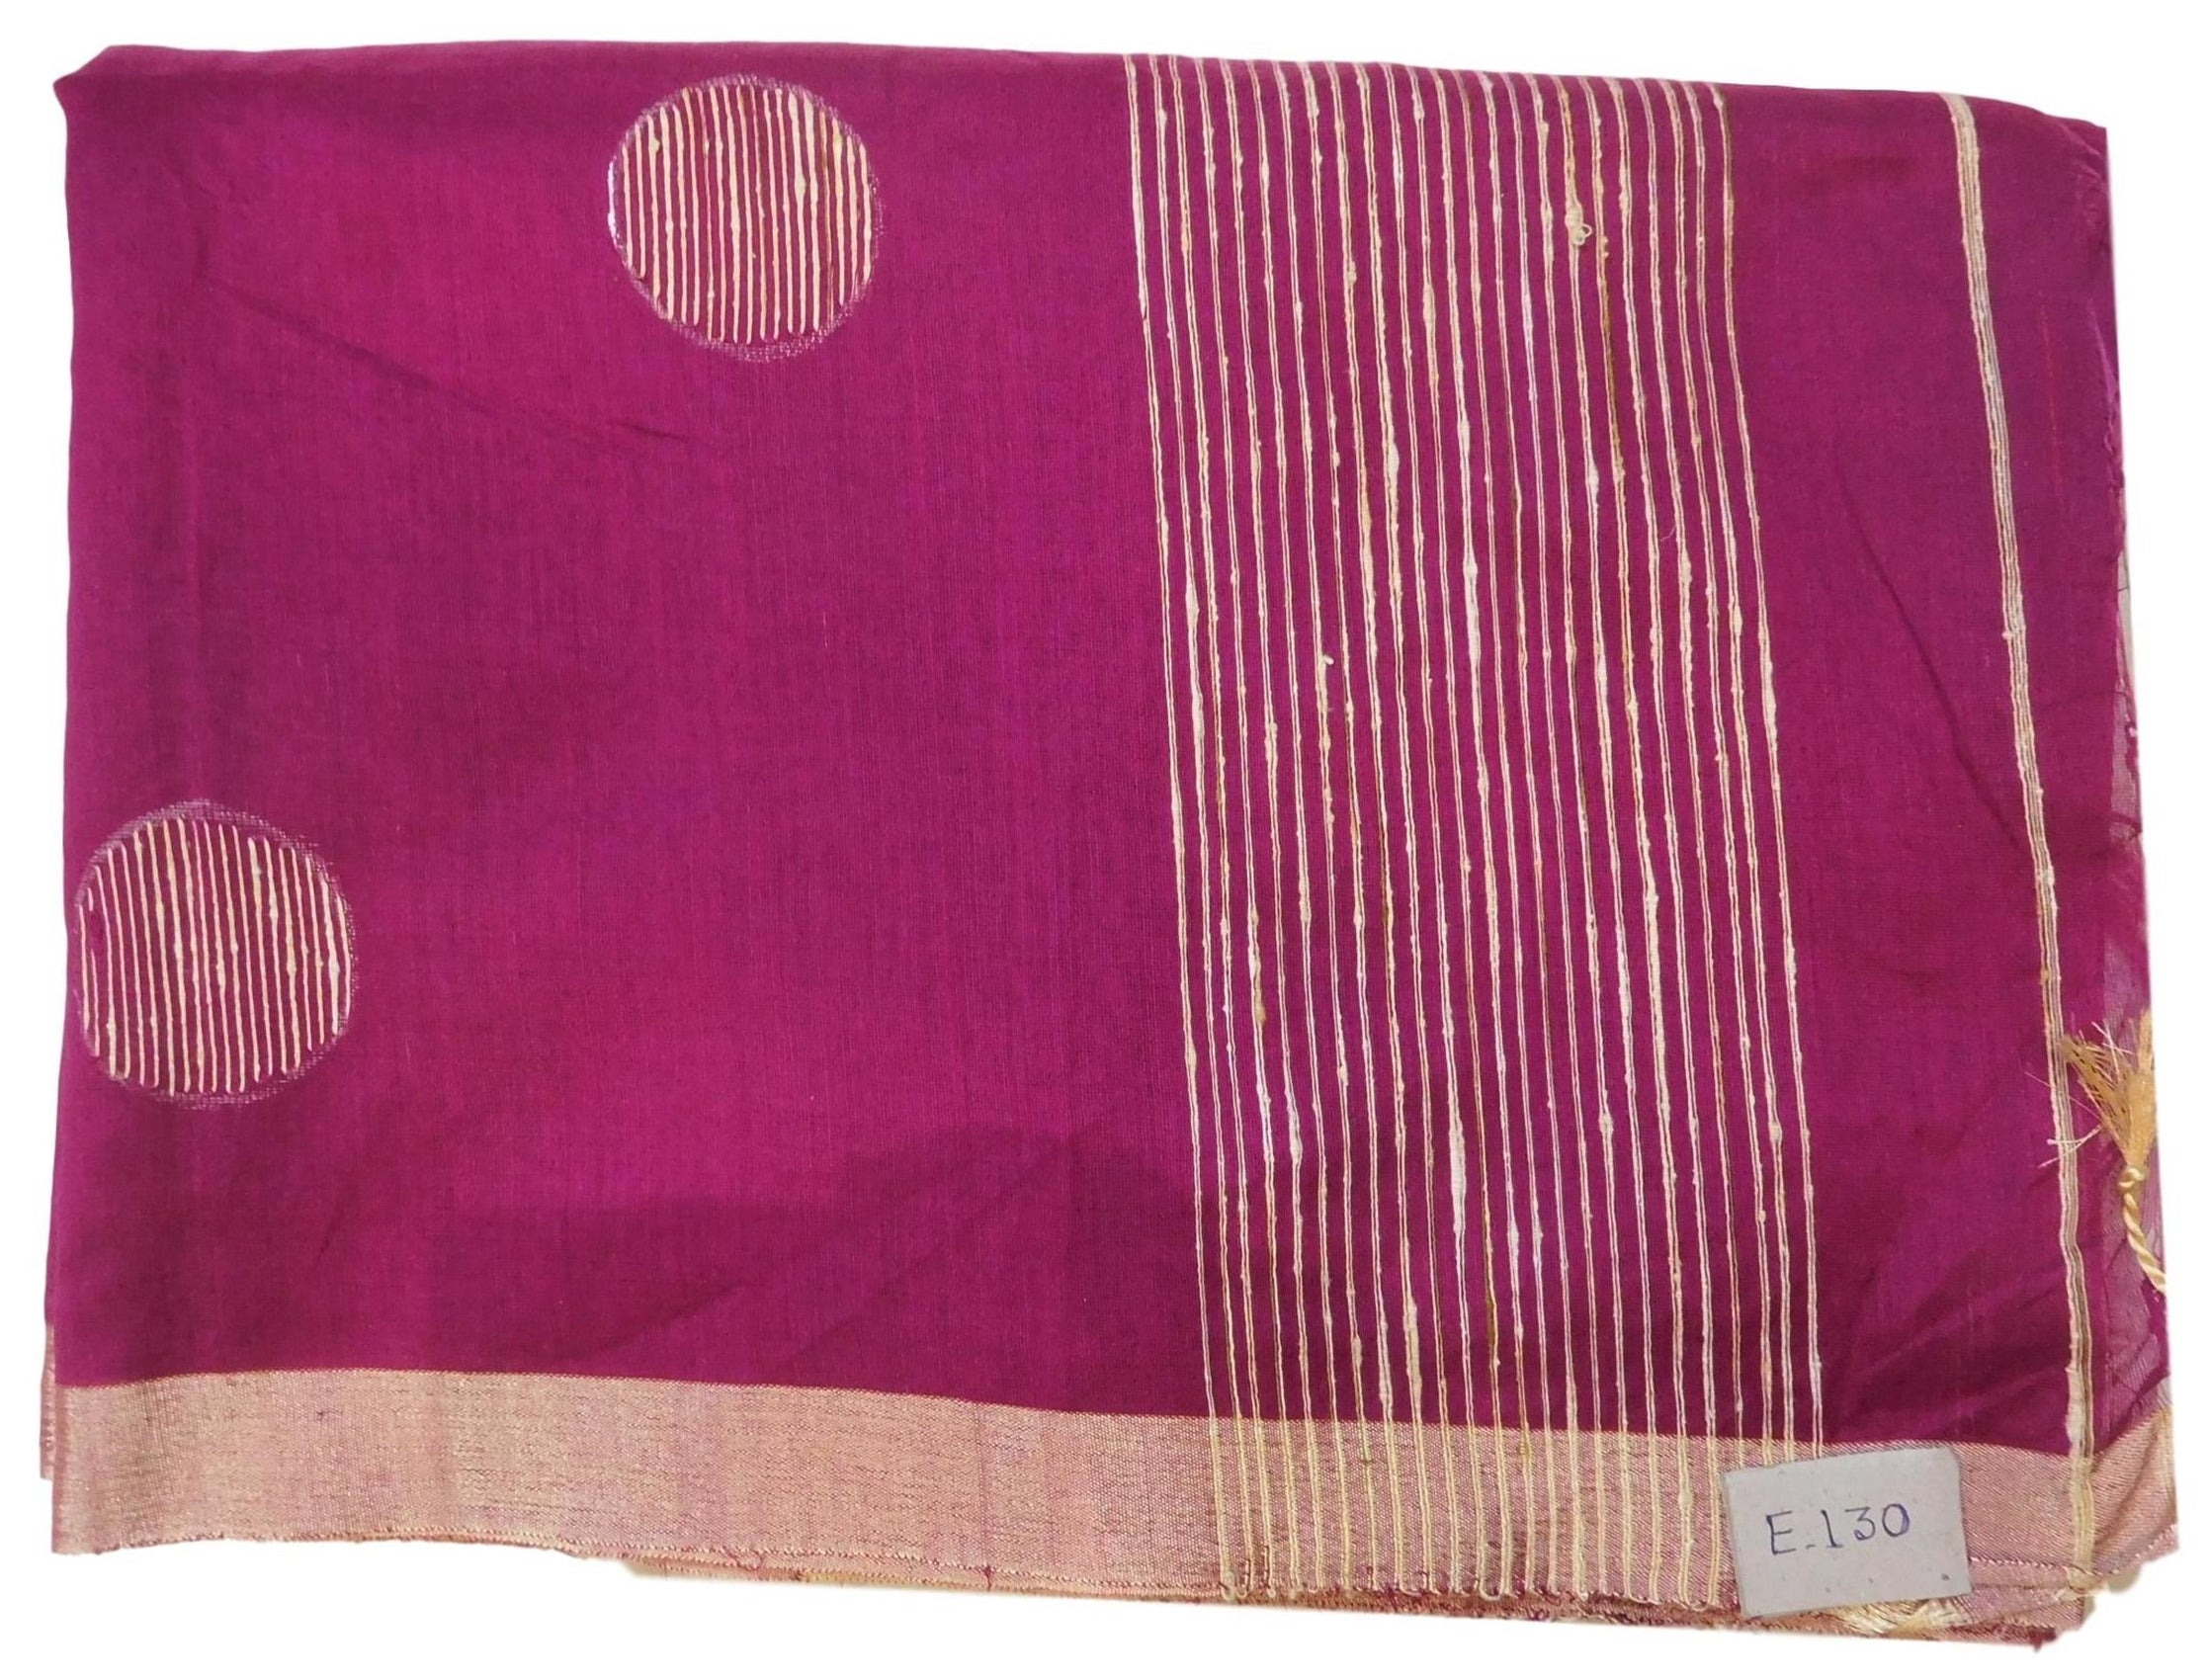 Wine Designer Wedding Partywear Pure Handloom Bengal Bangali Cotton Kolkata Saree Sari E130